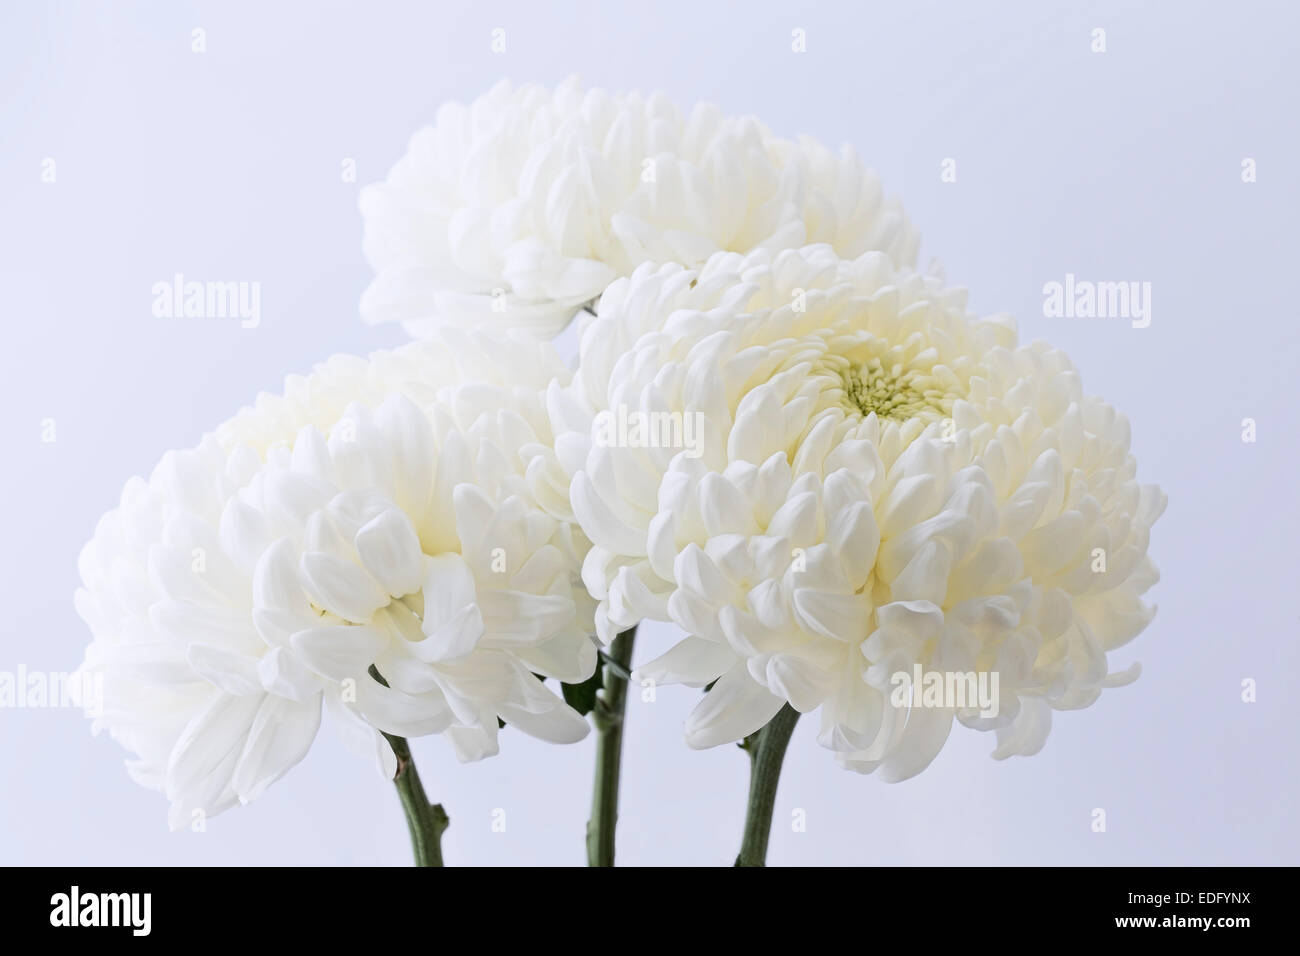 White mums stock photos white mums stock images alamy 3 white mums side lit against slightly blue background stock image mightylinksfo